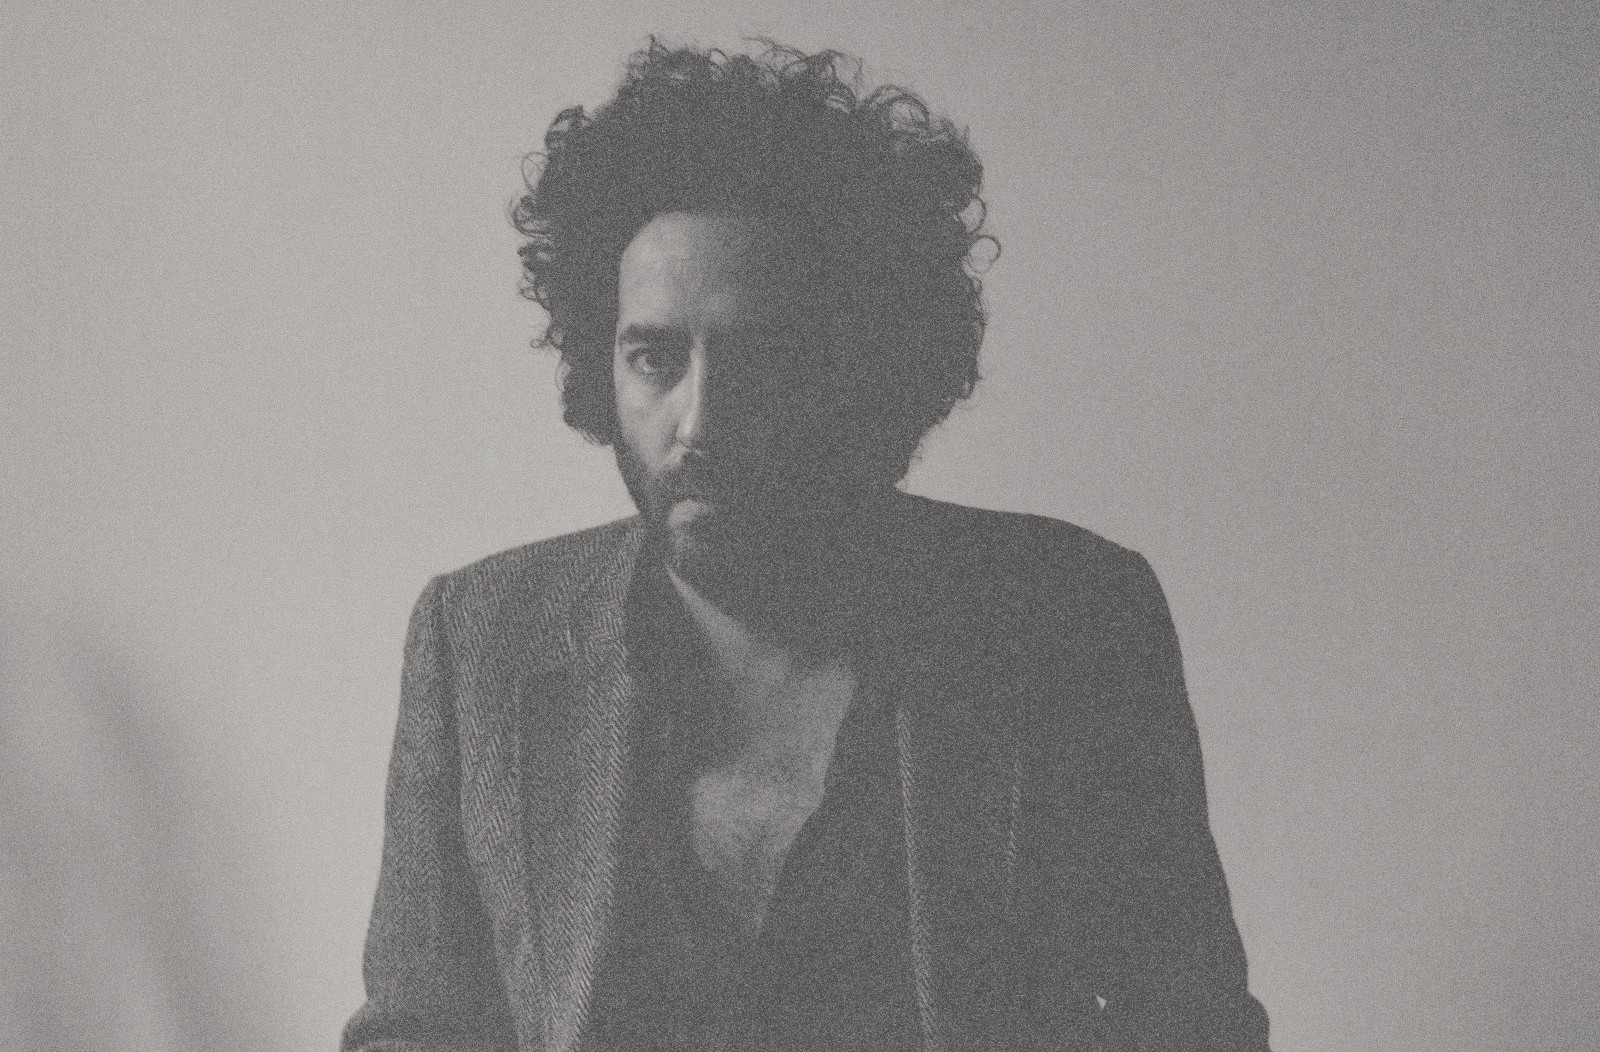 Review of 'Poison Season' the forthcoming release by Destroyer,